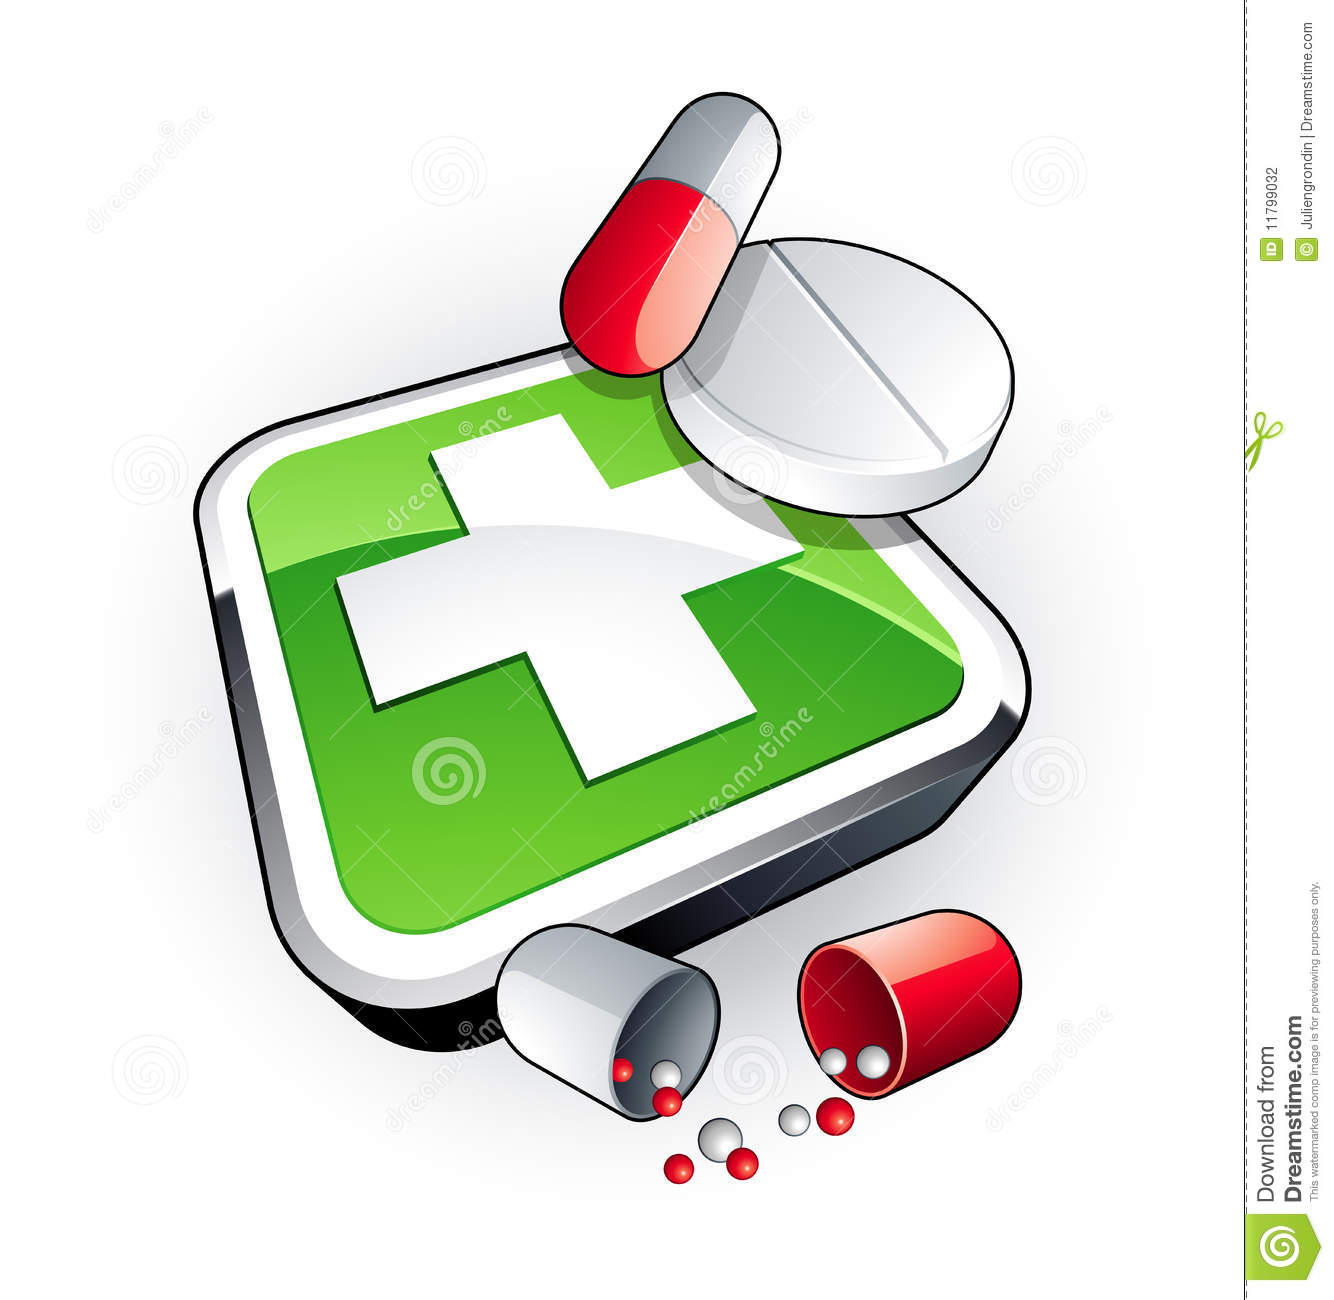 medical clipart clipart panda free clipart images rh clipartpanda com medical clip art free medical clipart with transparent background